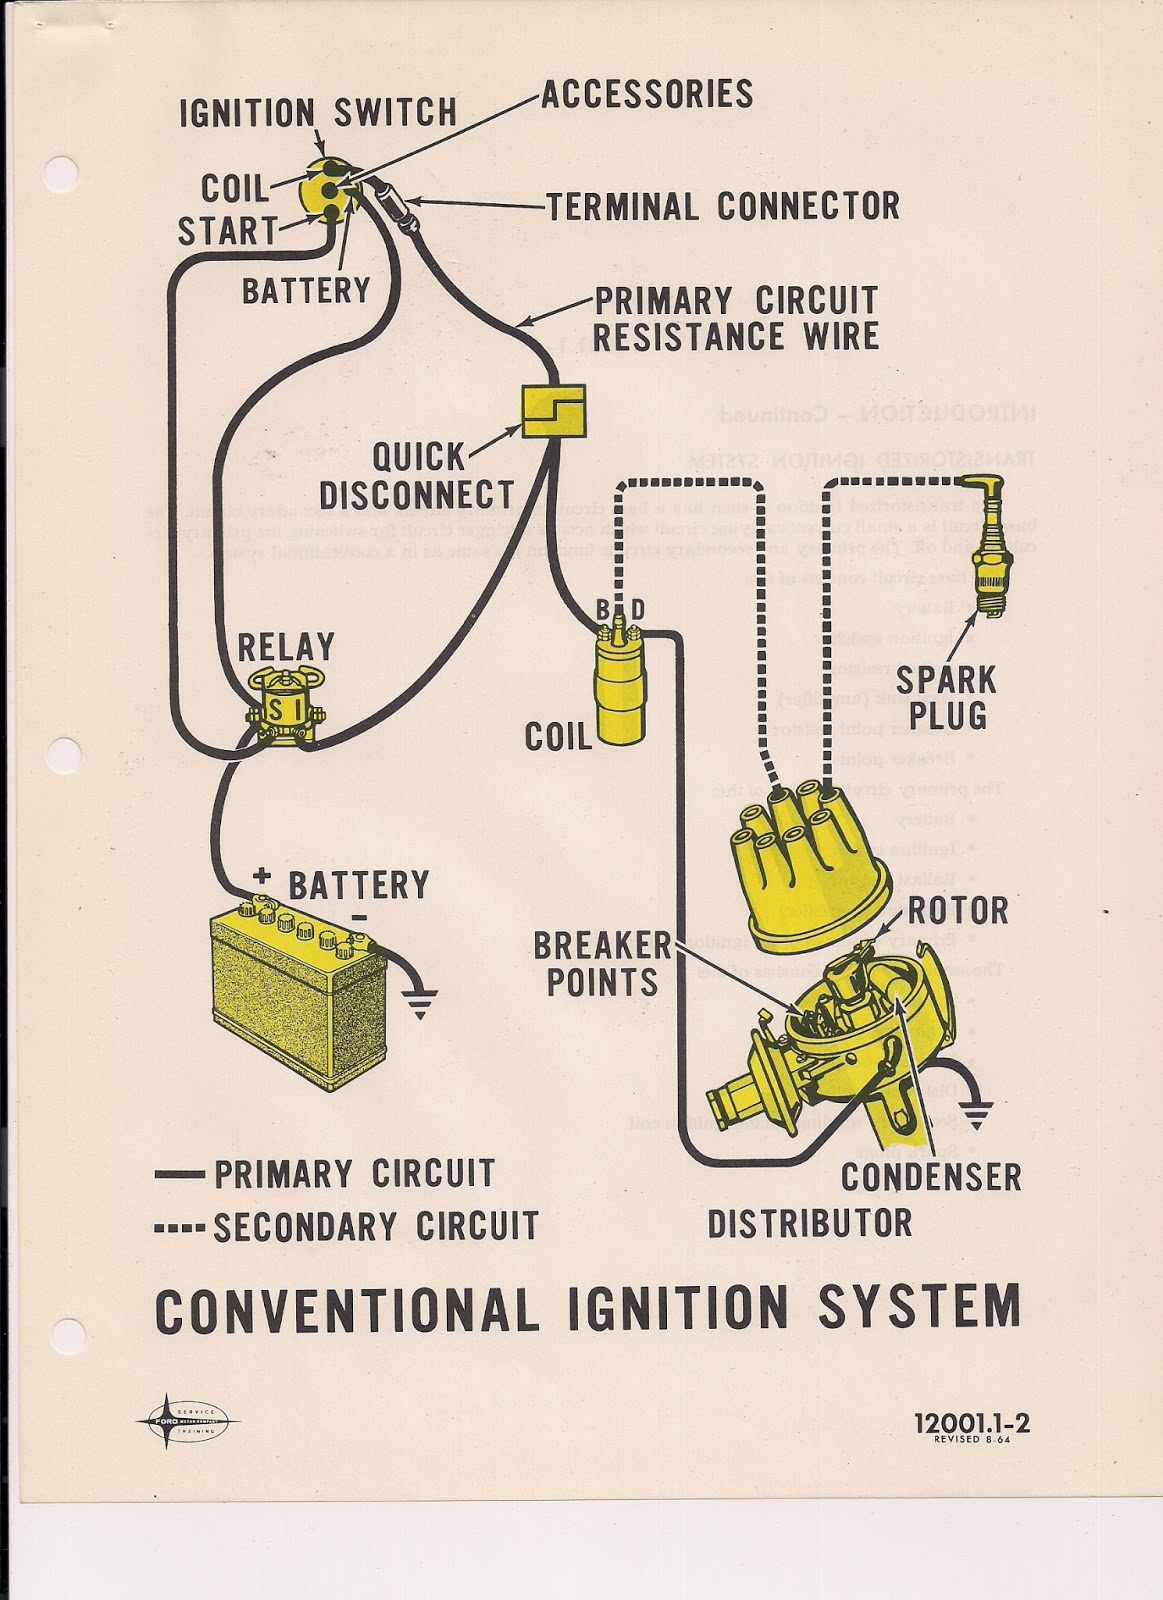 66 Mustang Ignition Wiring Diagram Whirlpool Duet 1967 Coil 1957 Ford